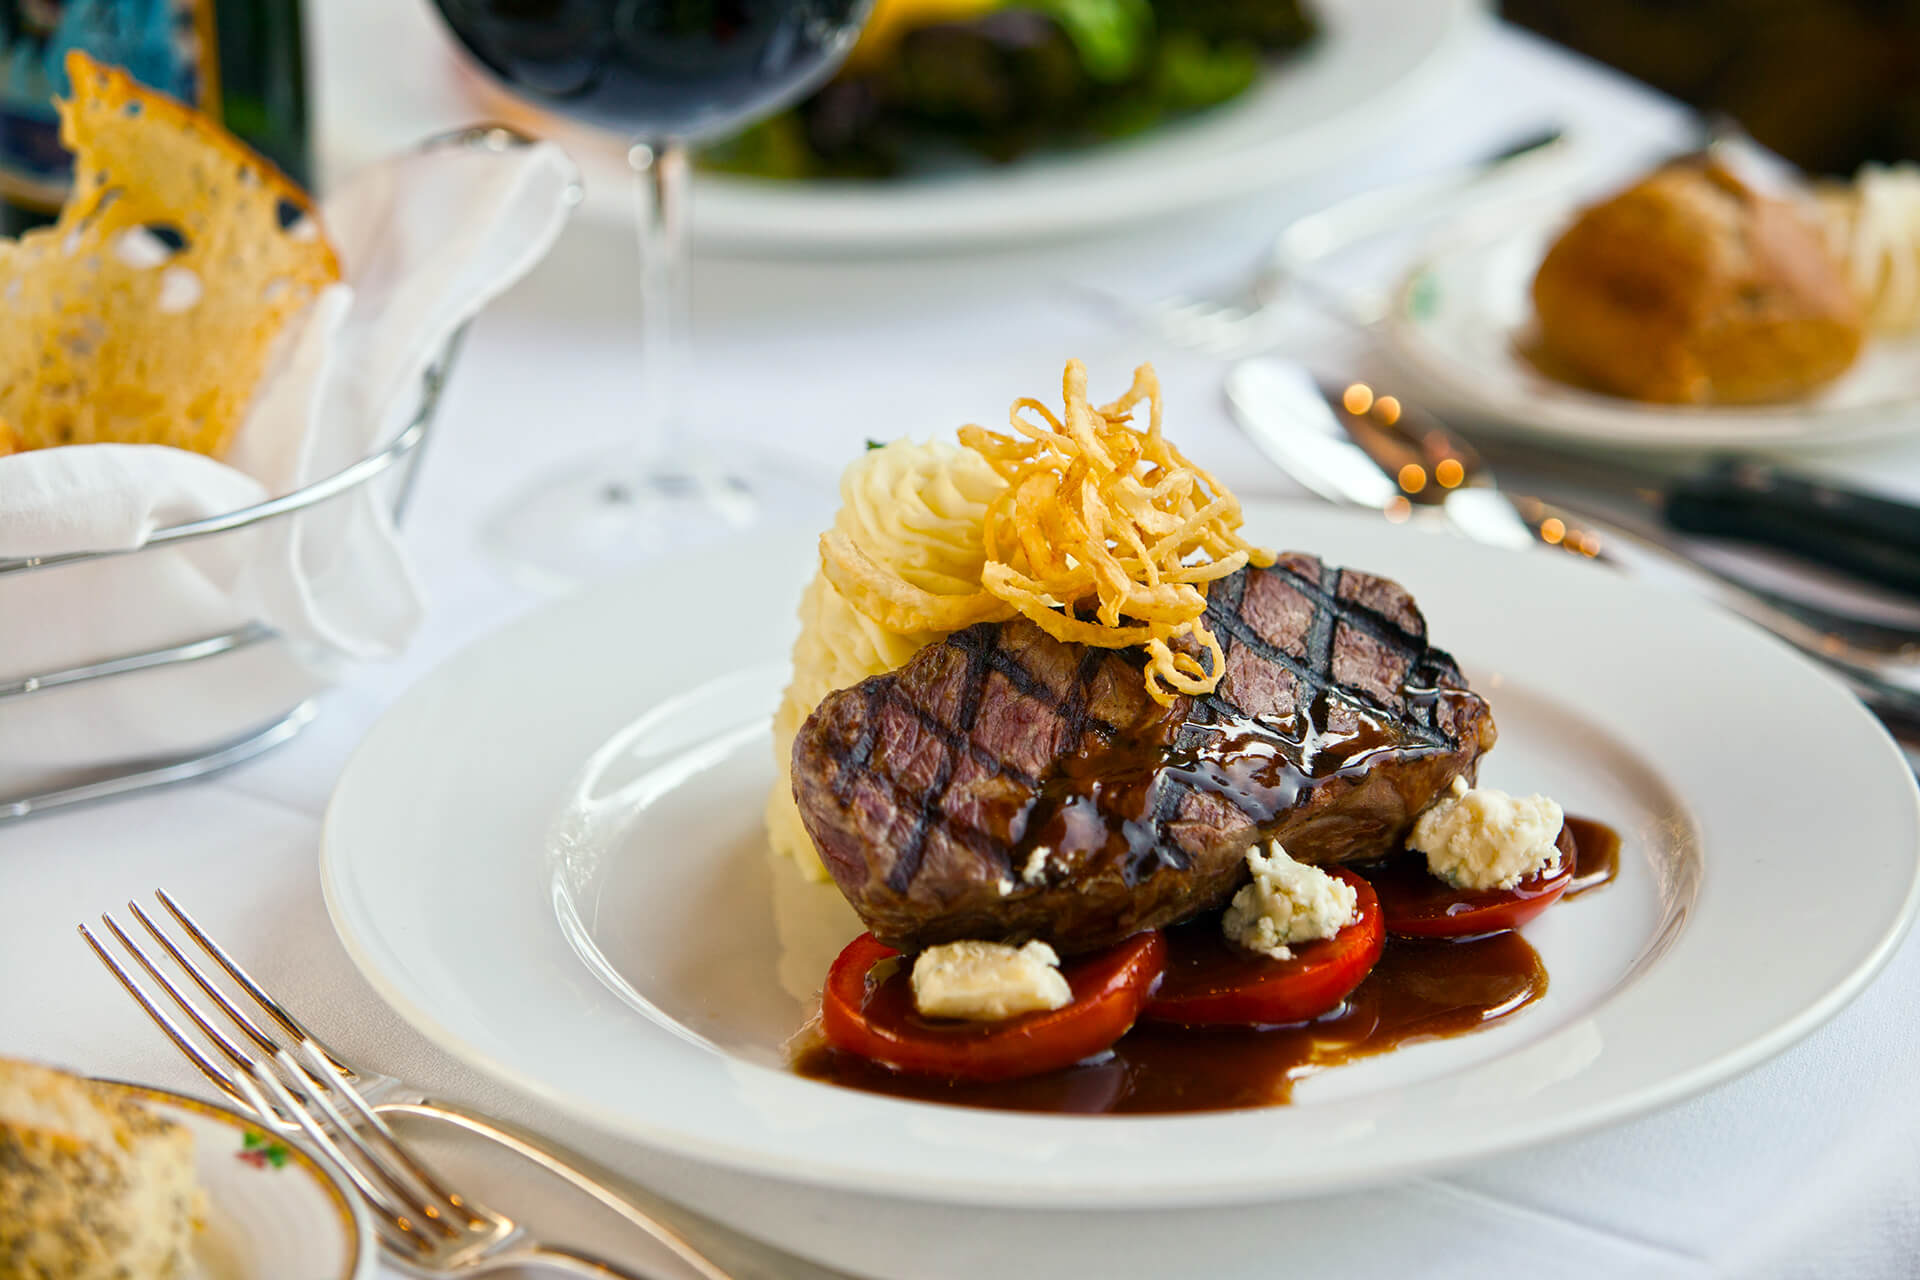 We're the best steakhouse and Greek restaurant in town.